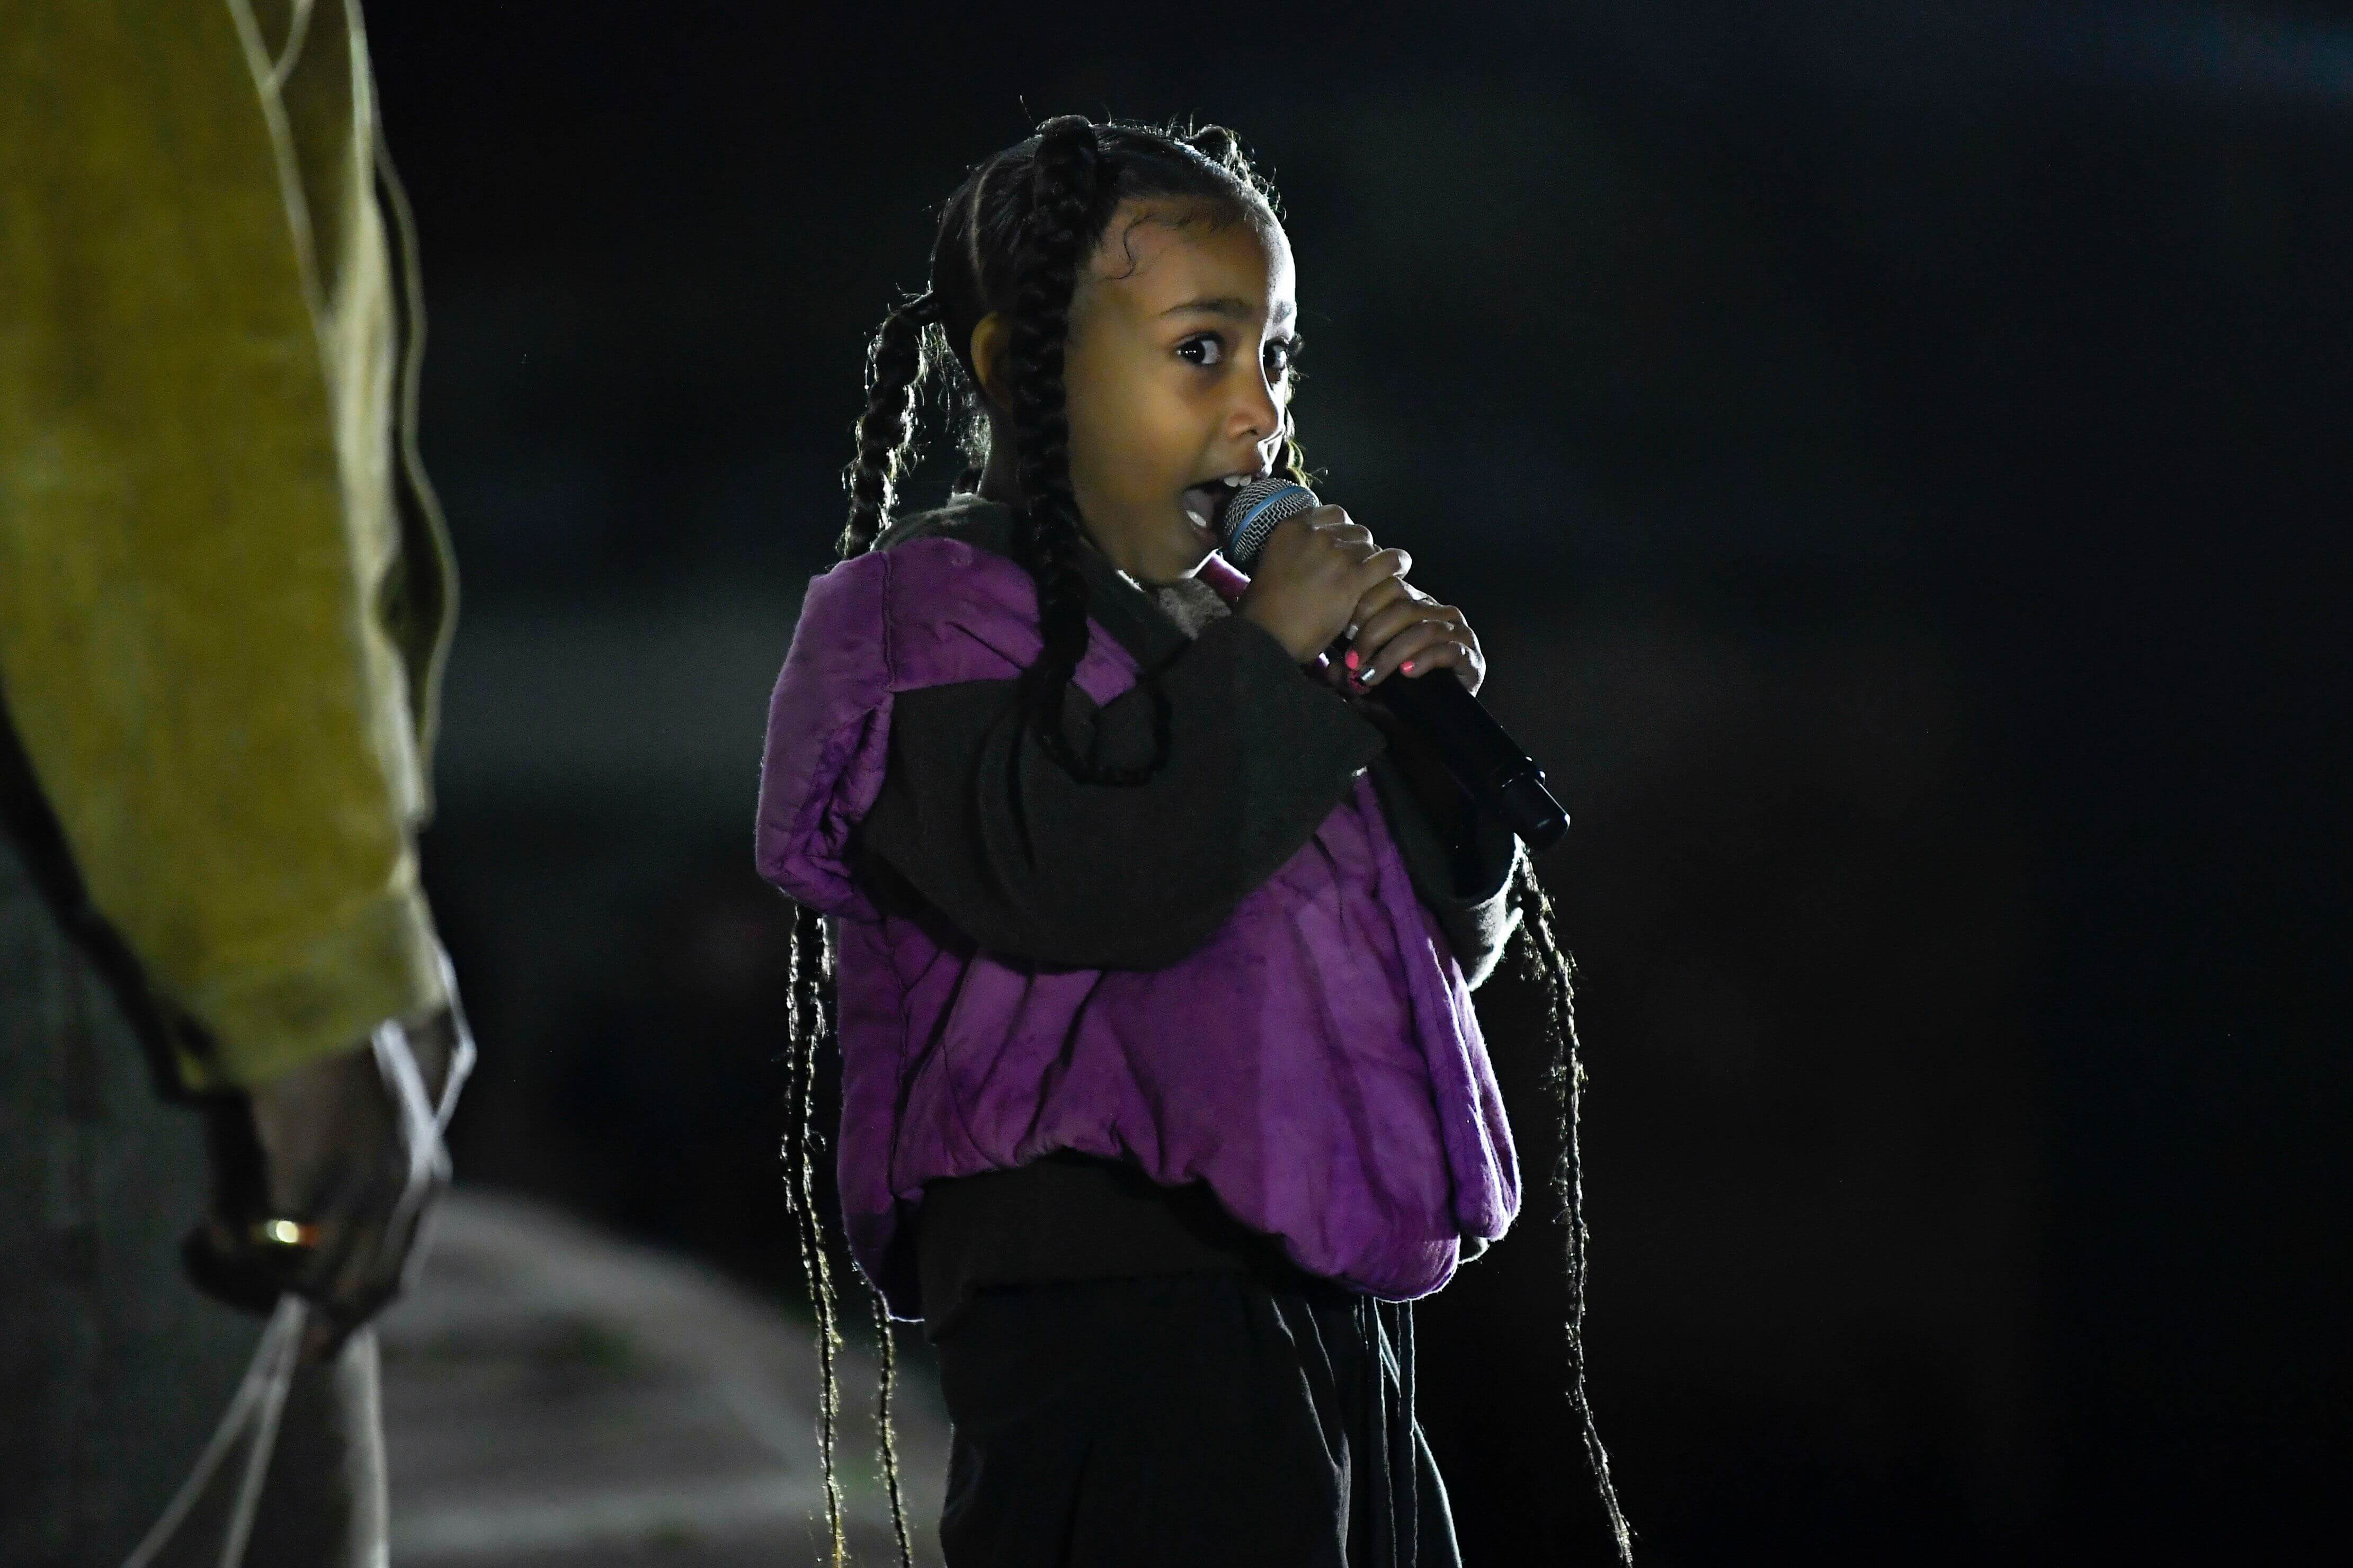 North West was urged by her dad to perform at the event